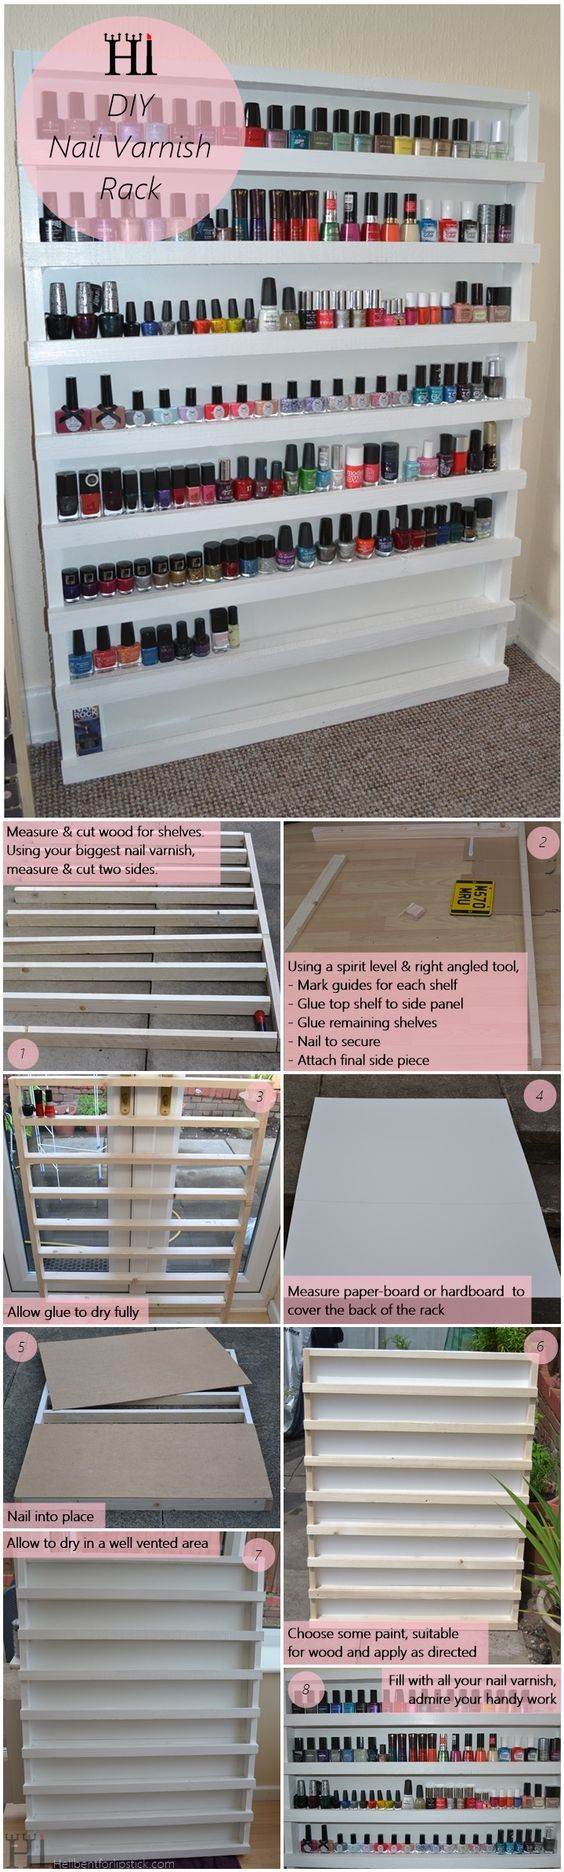 Creative Makeup Storage Ideas And Hacks For Girls - Noted List